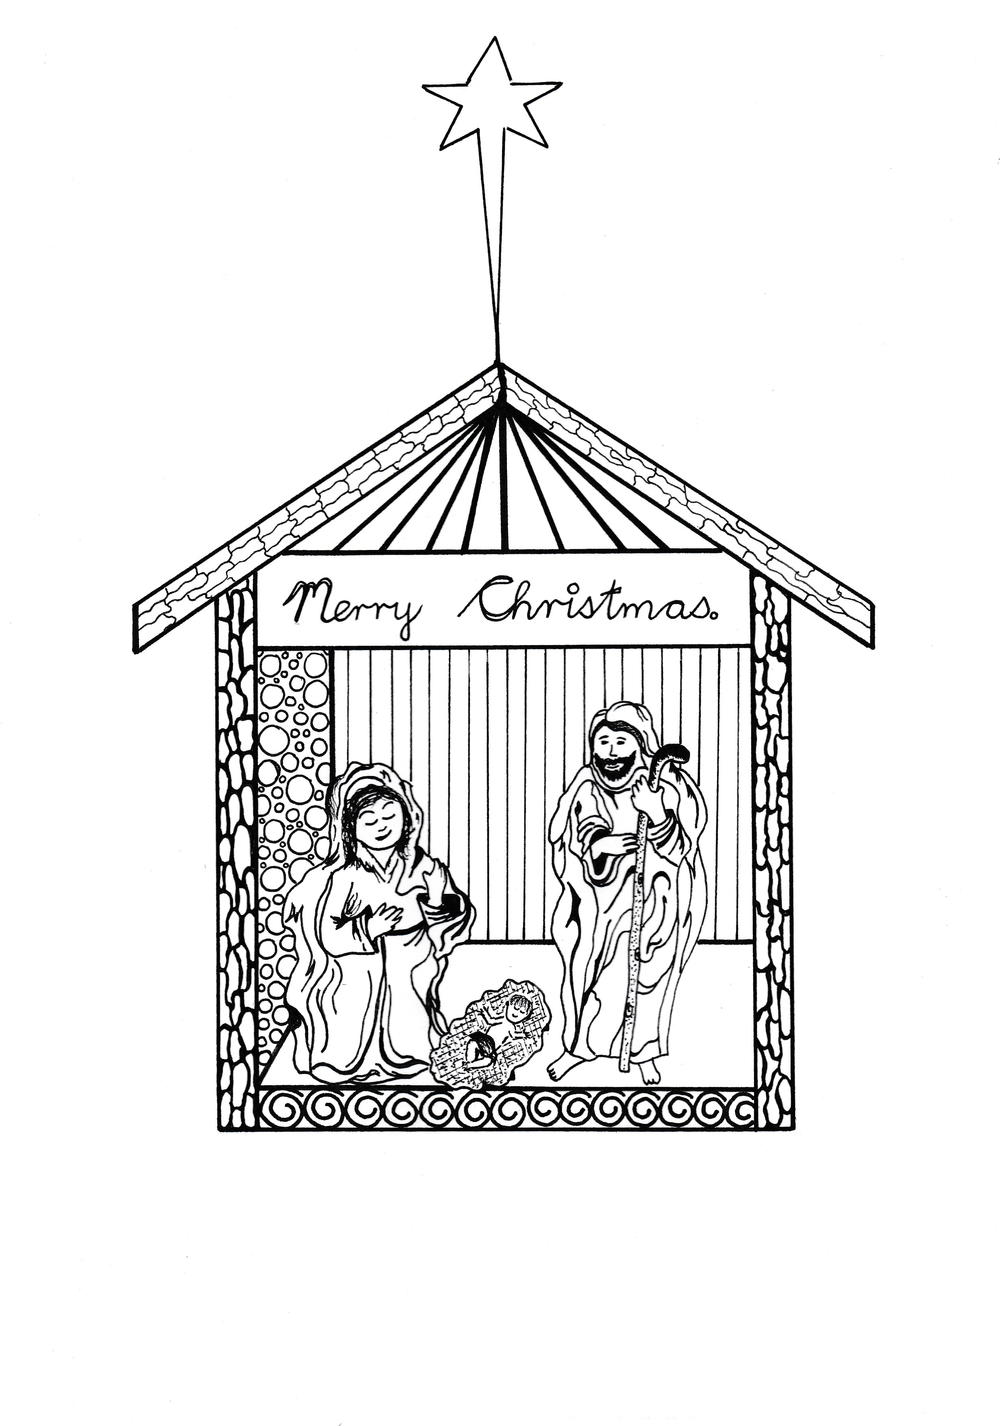 Free Printable Nativity Scene Coloring Pages | AllFreeChristmasCrafts ...